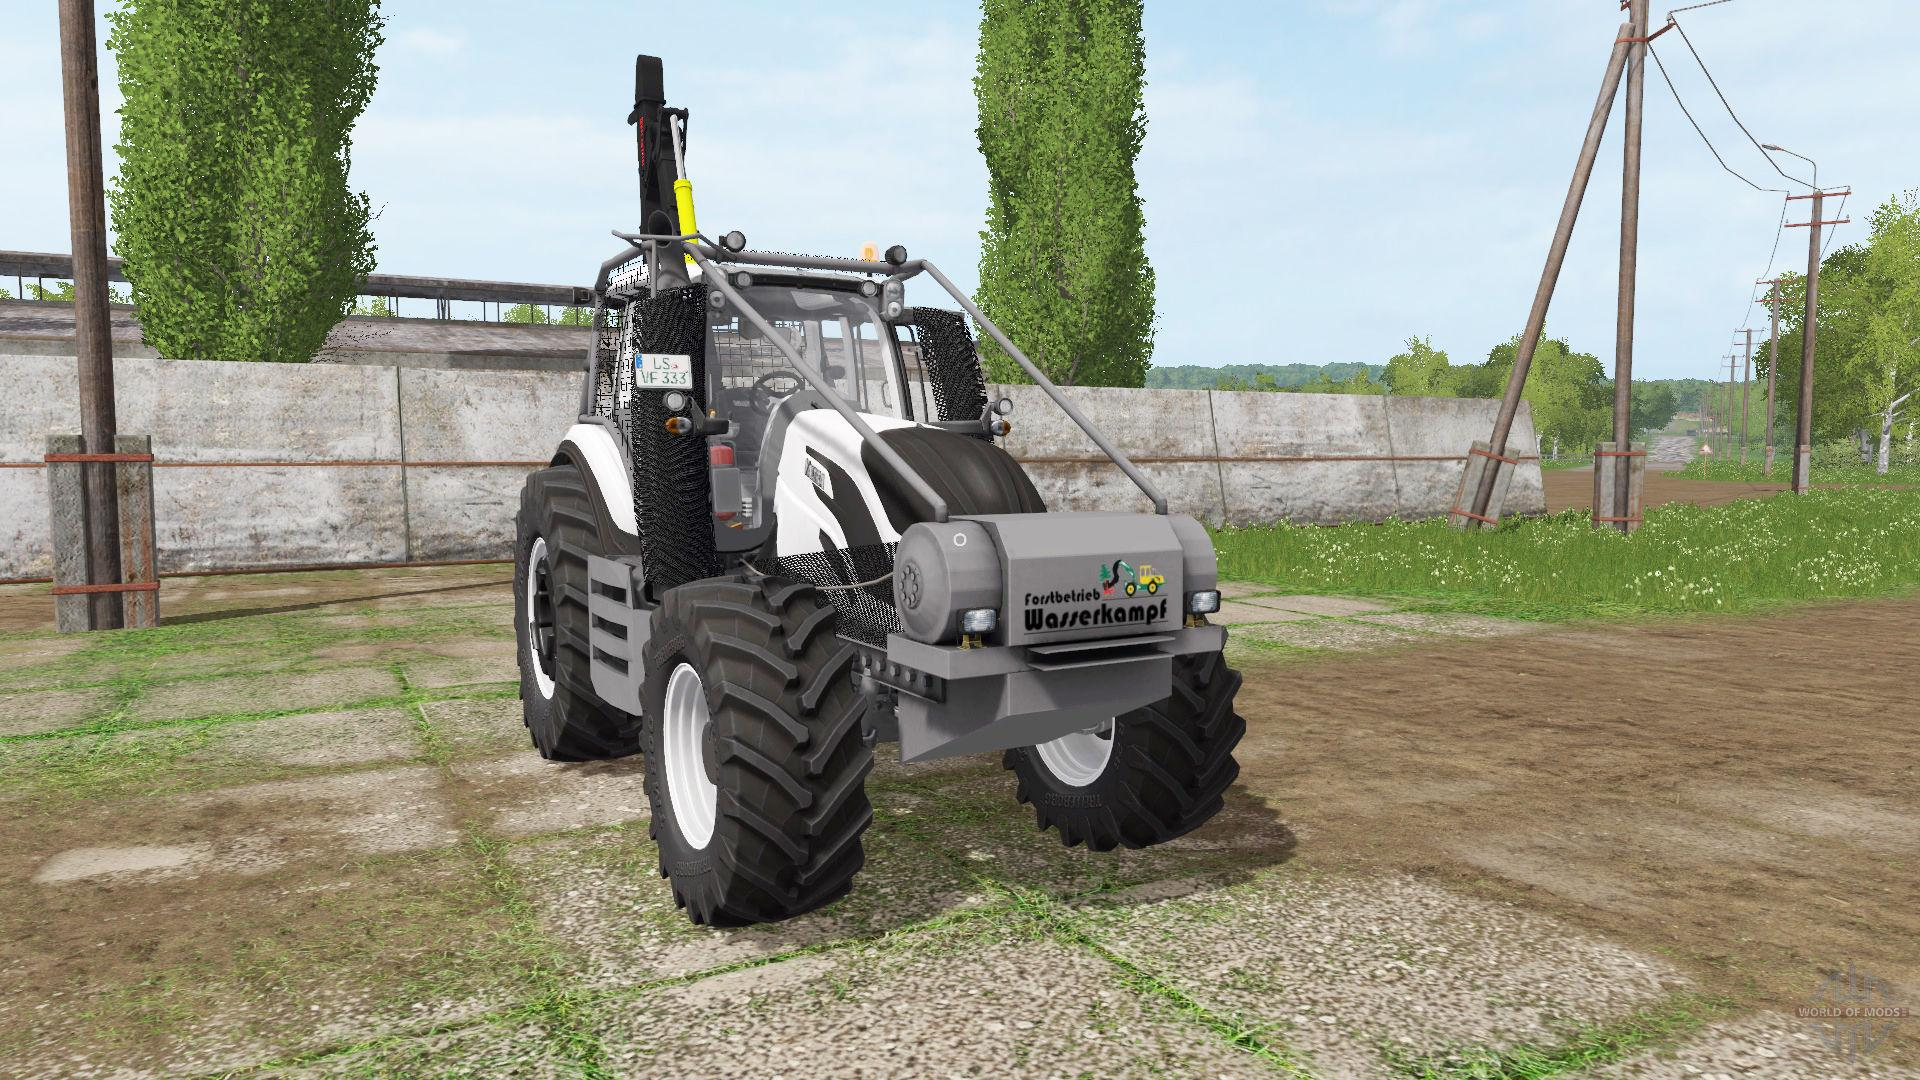 Forestry » GamesMods net - FS19, FS17, ETS 2 mods